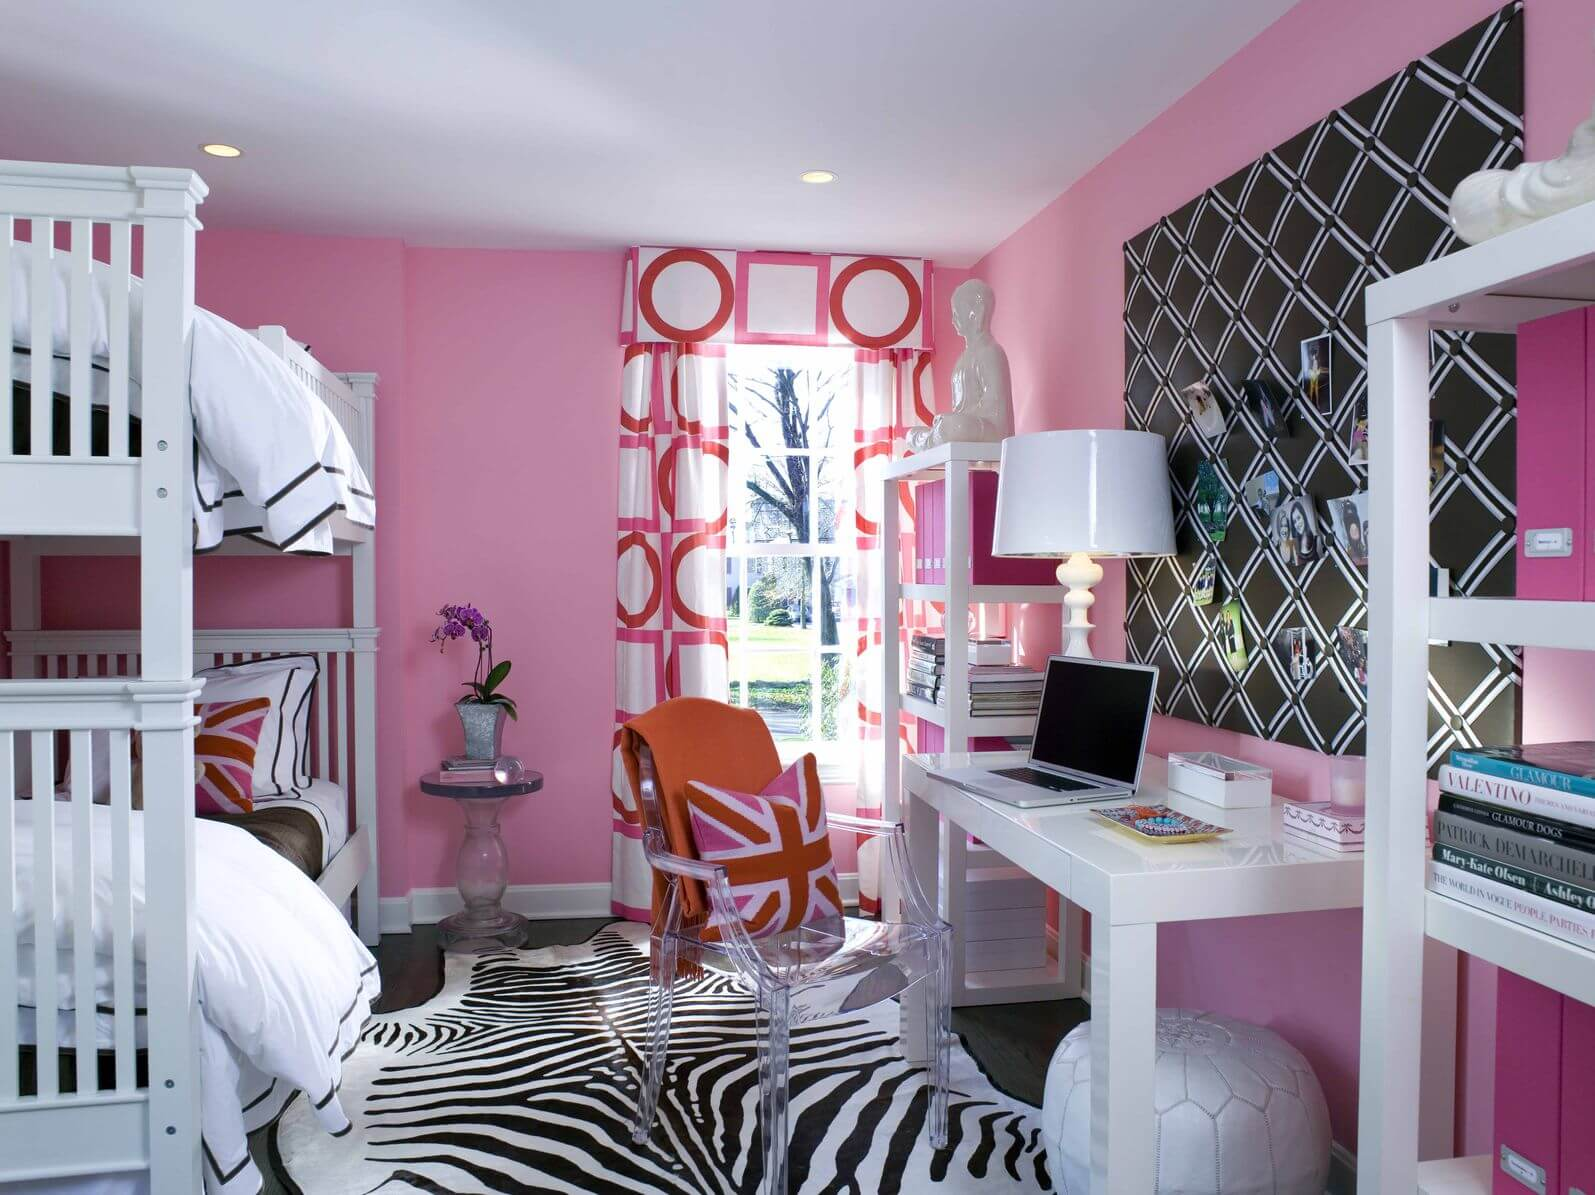 Here's an example of a kid's room incorporating zebra print with a rug. It's playful and lessens the brightness of the pink color motif throughout.